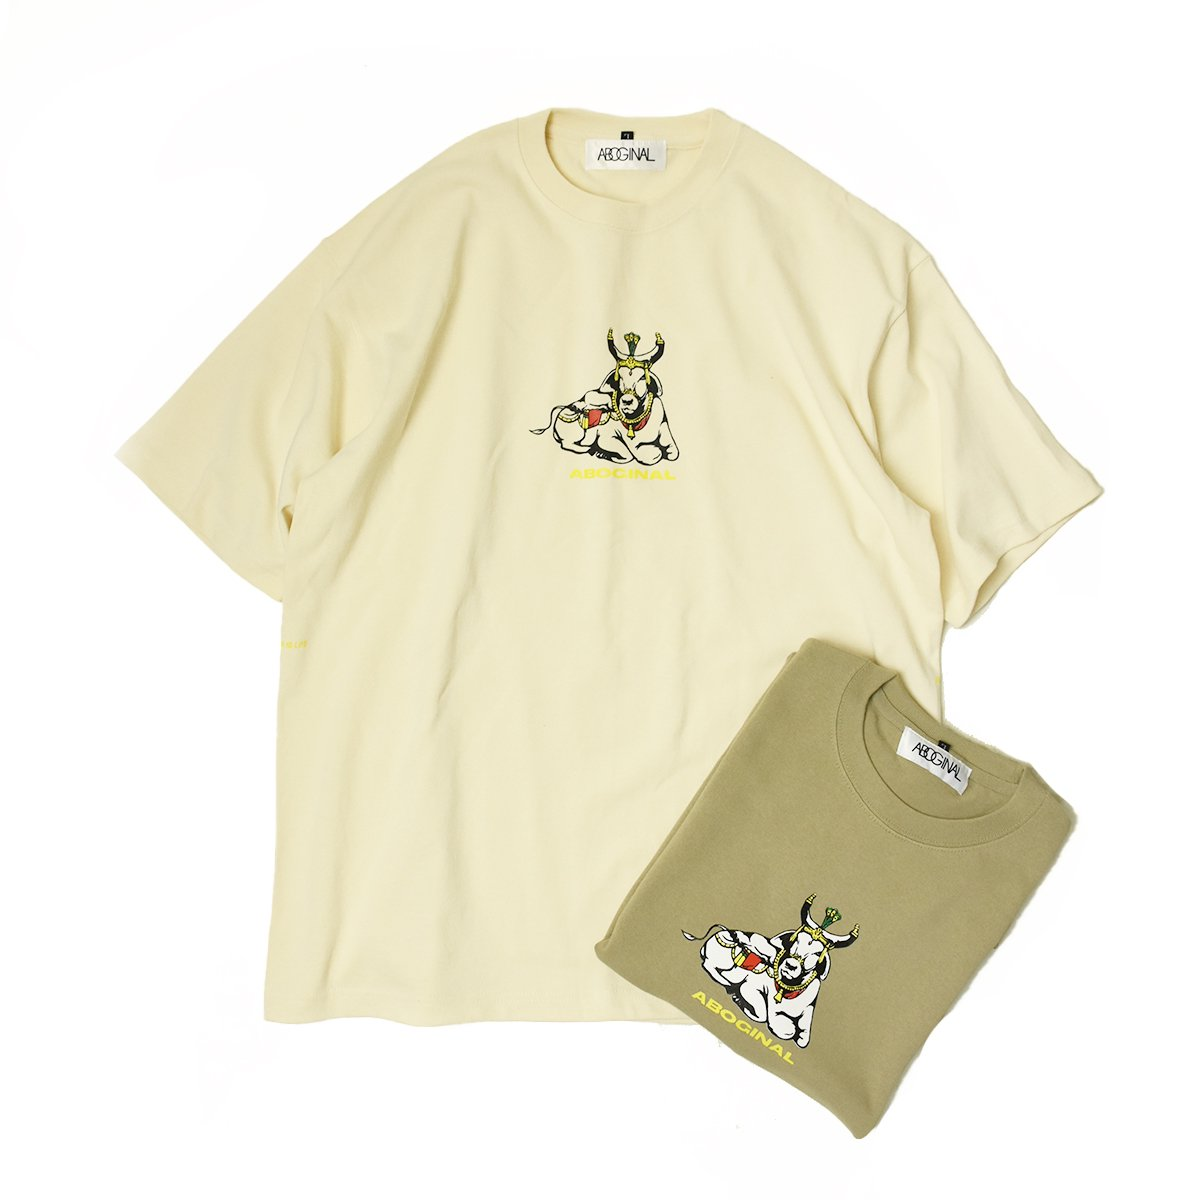 【ABOGINAL】Cow st, S/S Tee (2Color)                           </a>             <span class=